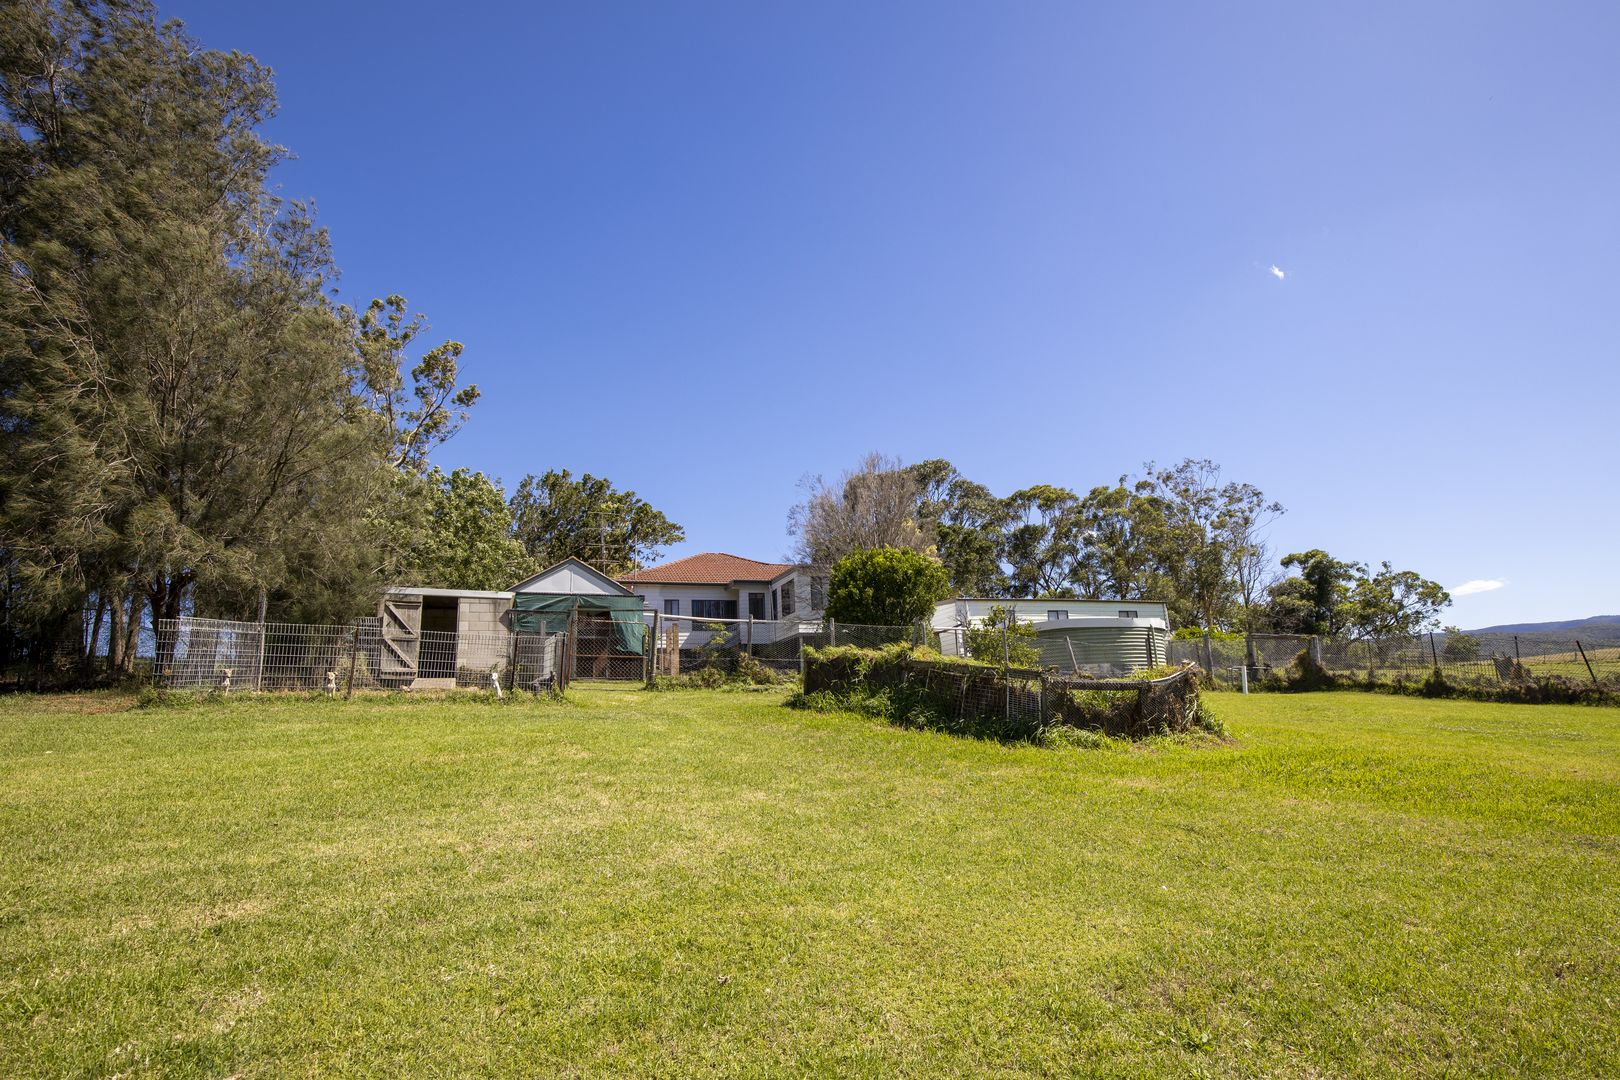 484 Marshall Mount Road, Marshall Mount NSW 2530, Image 2